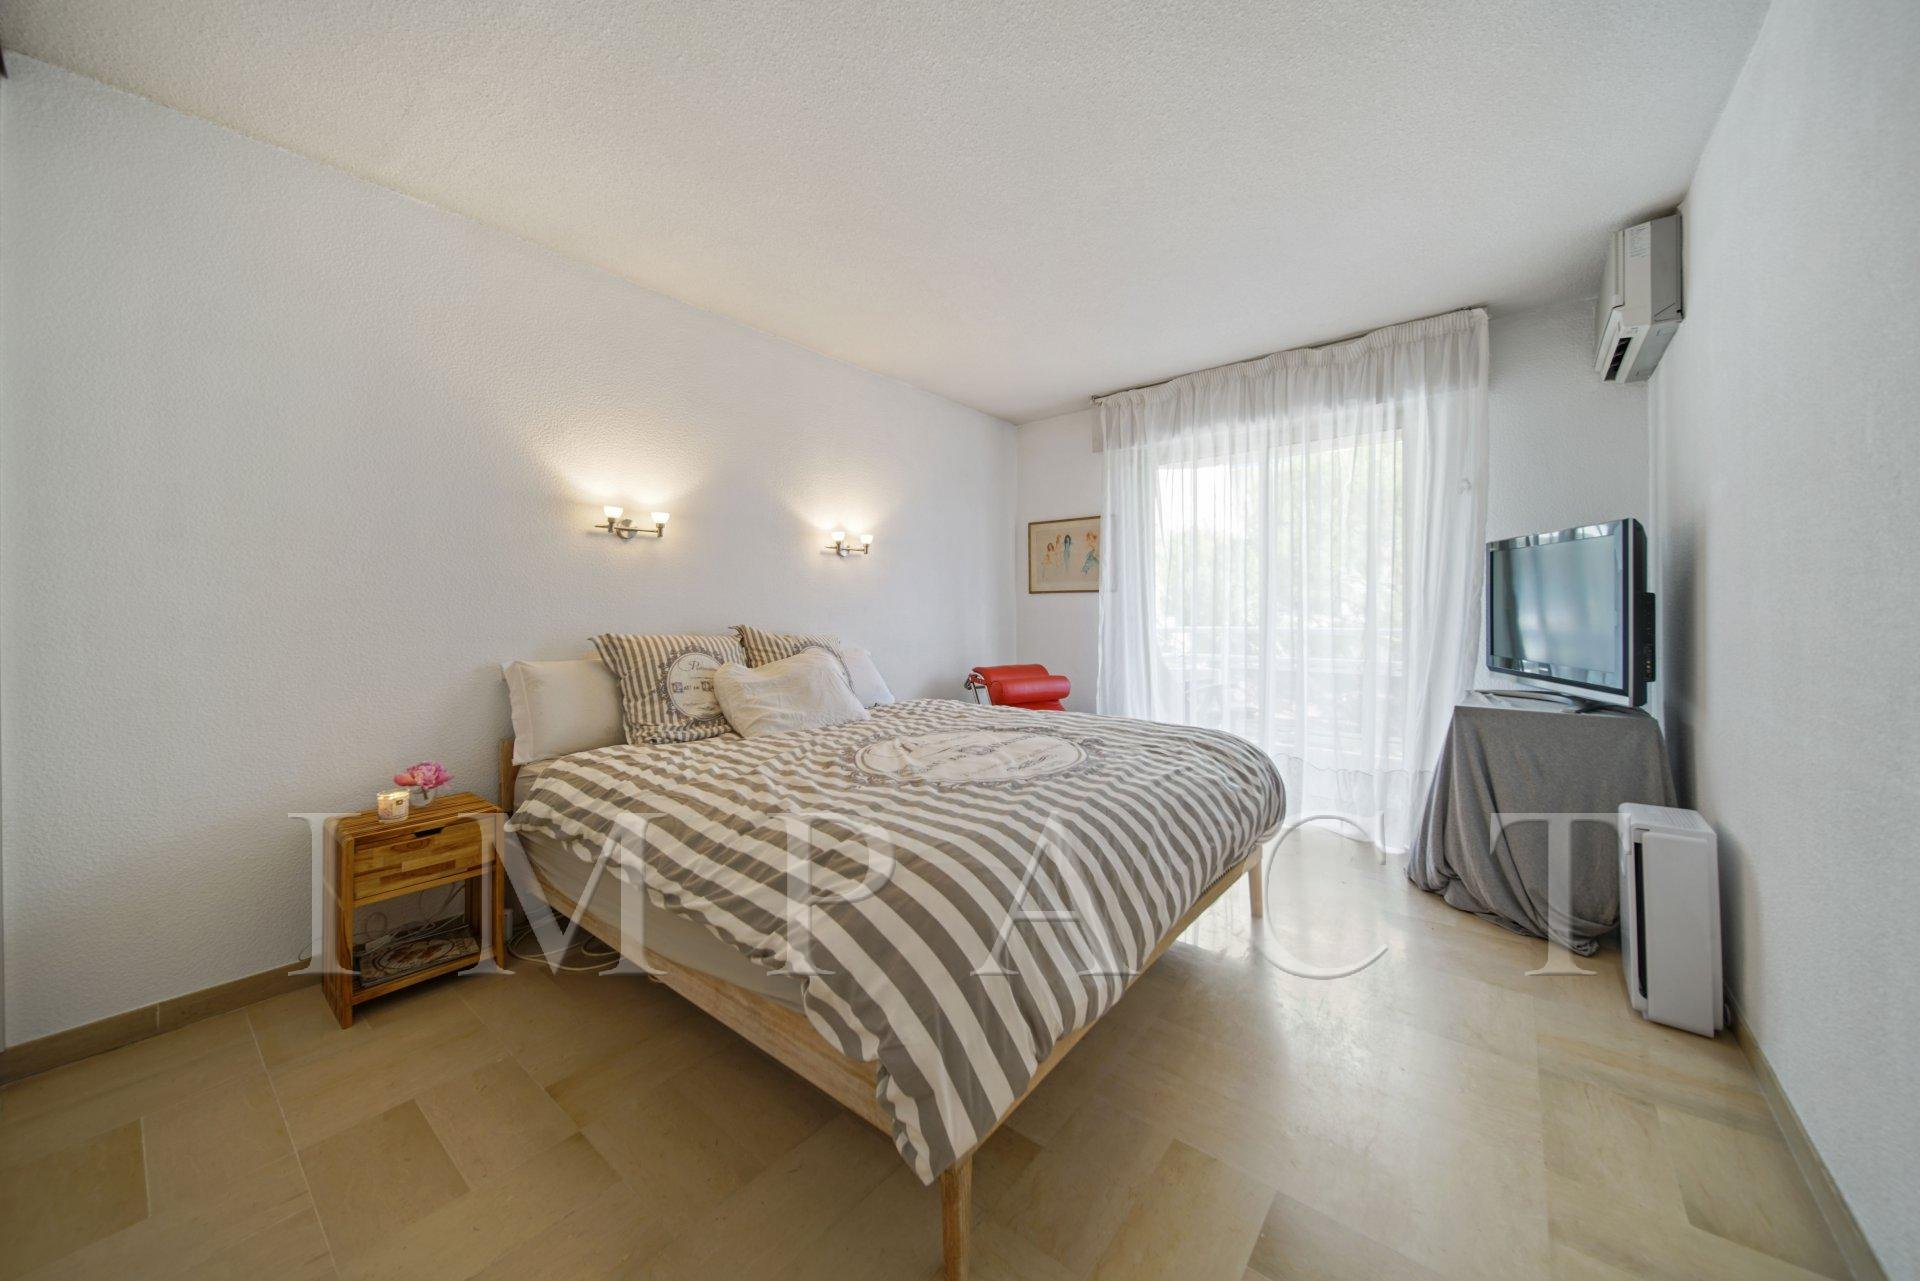 APARTMENT FOR SALE CANNES - BASSE CALIFORNIE